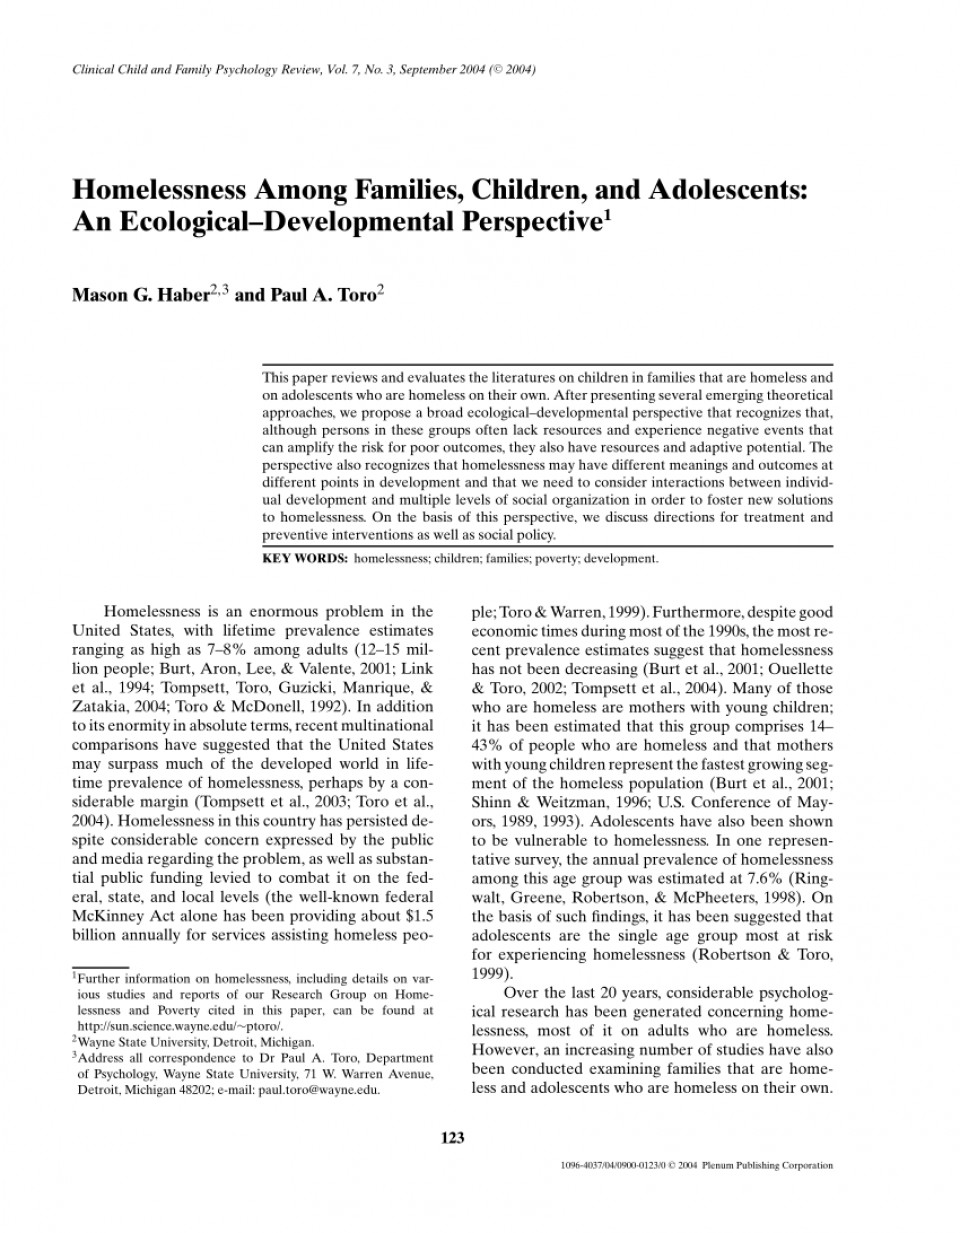 002 Research Paper On Homelessness Singular Article In The United States 960